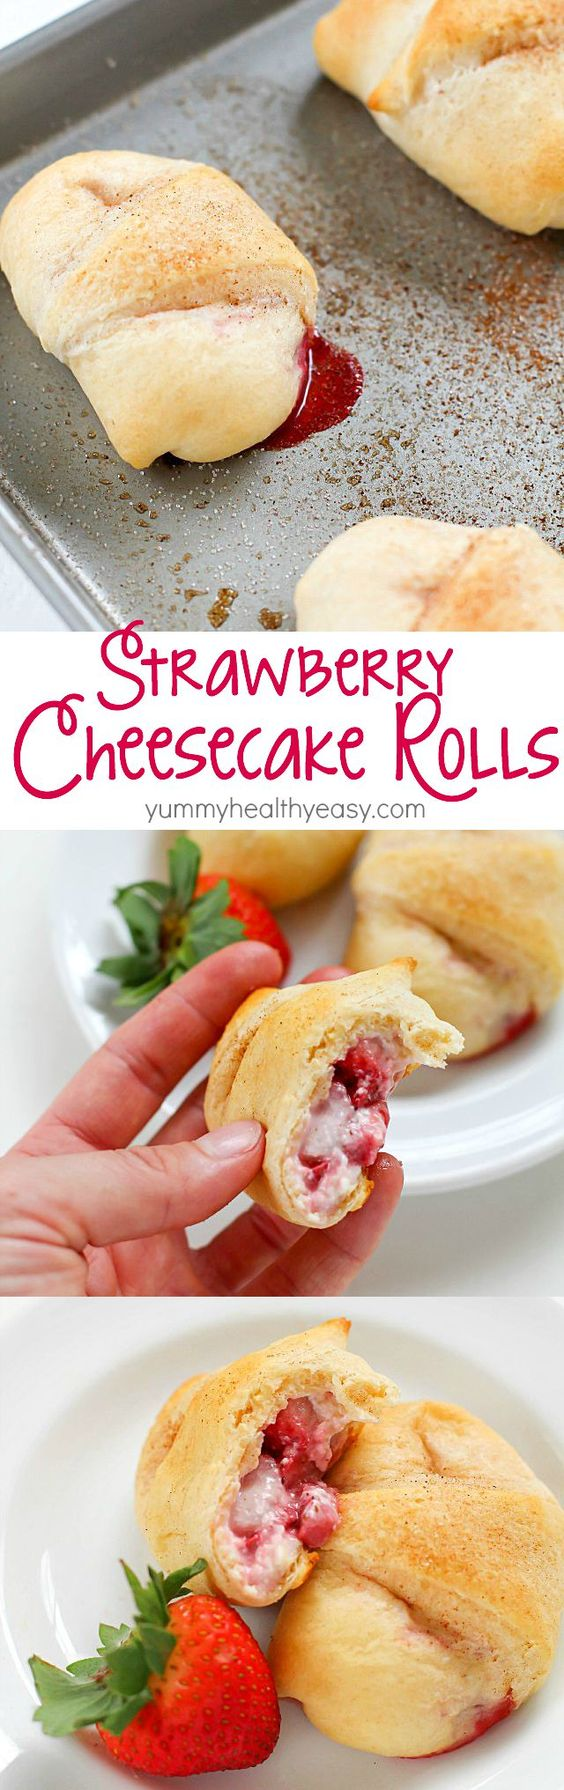 Strawberry Cheesecake Crescent Rolls: